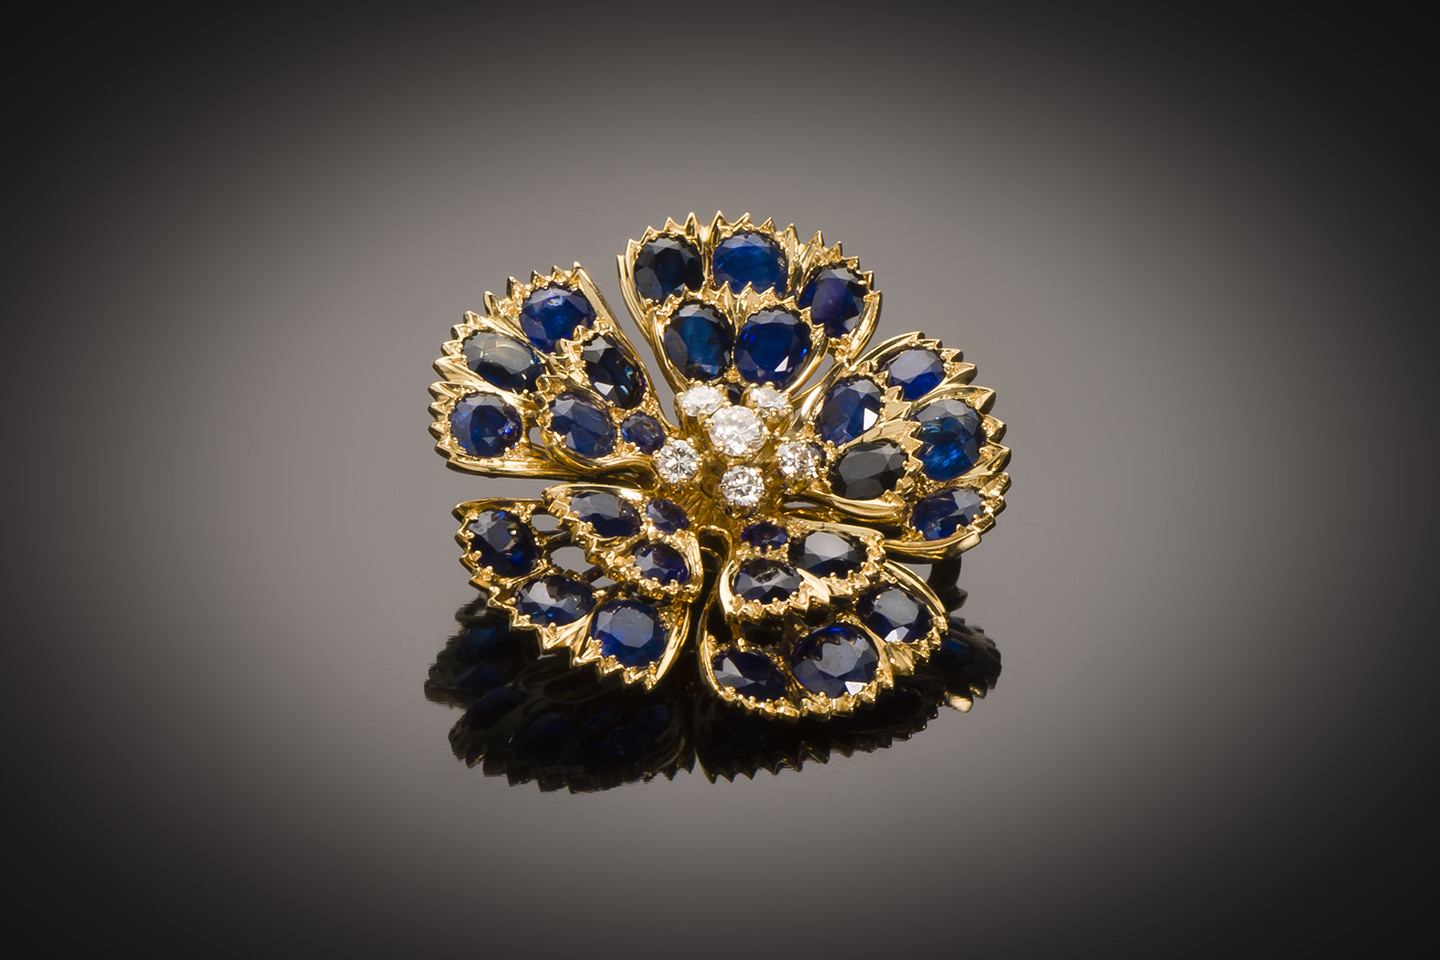 Broche saphirs (5 carats) diamants vers 1950-1